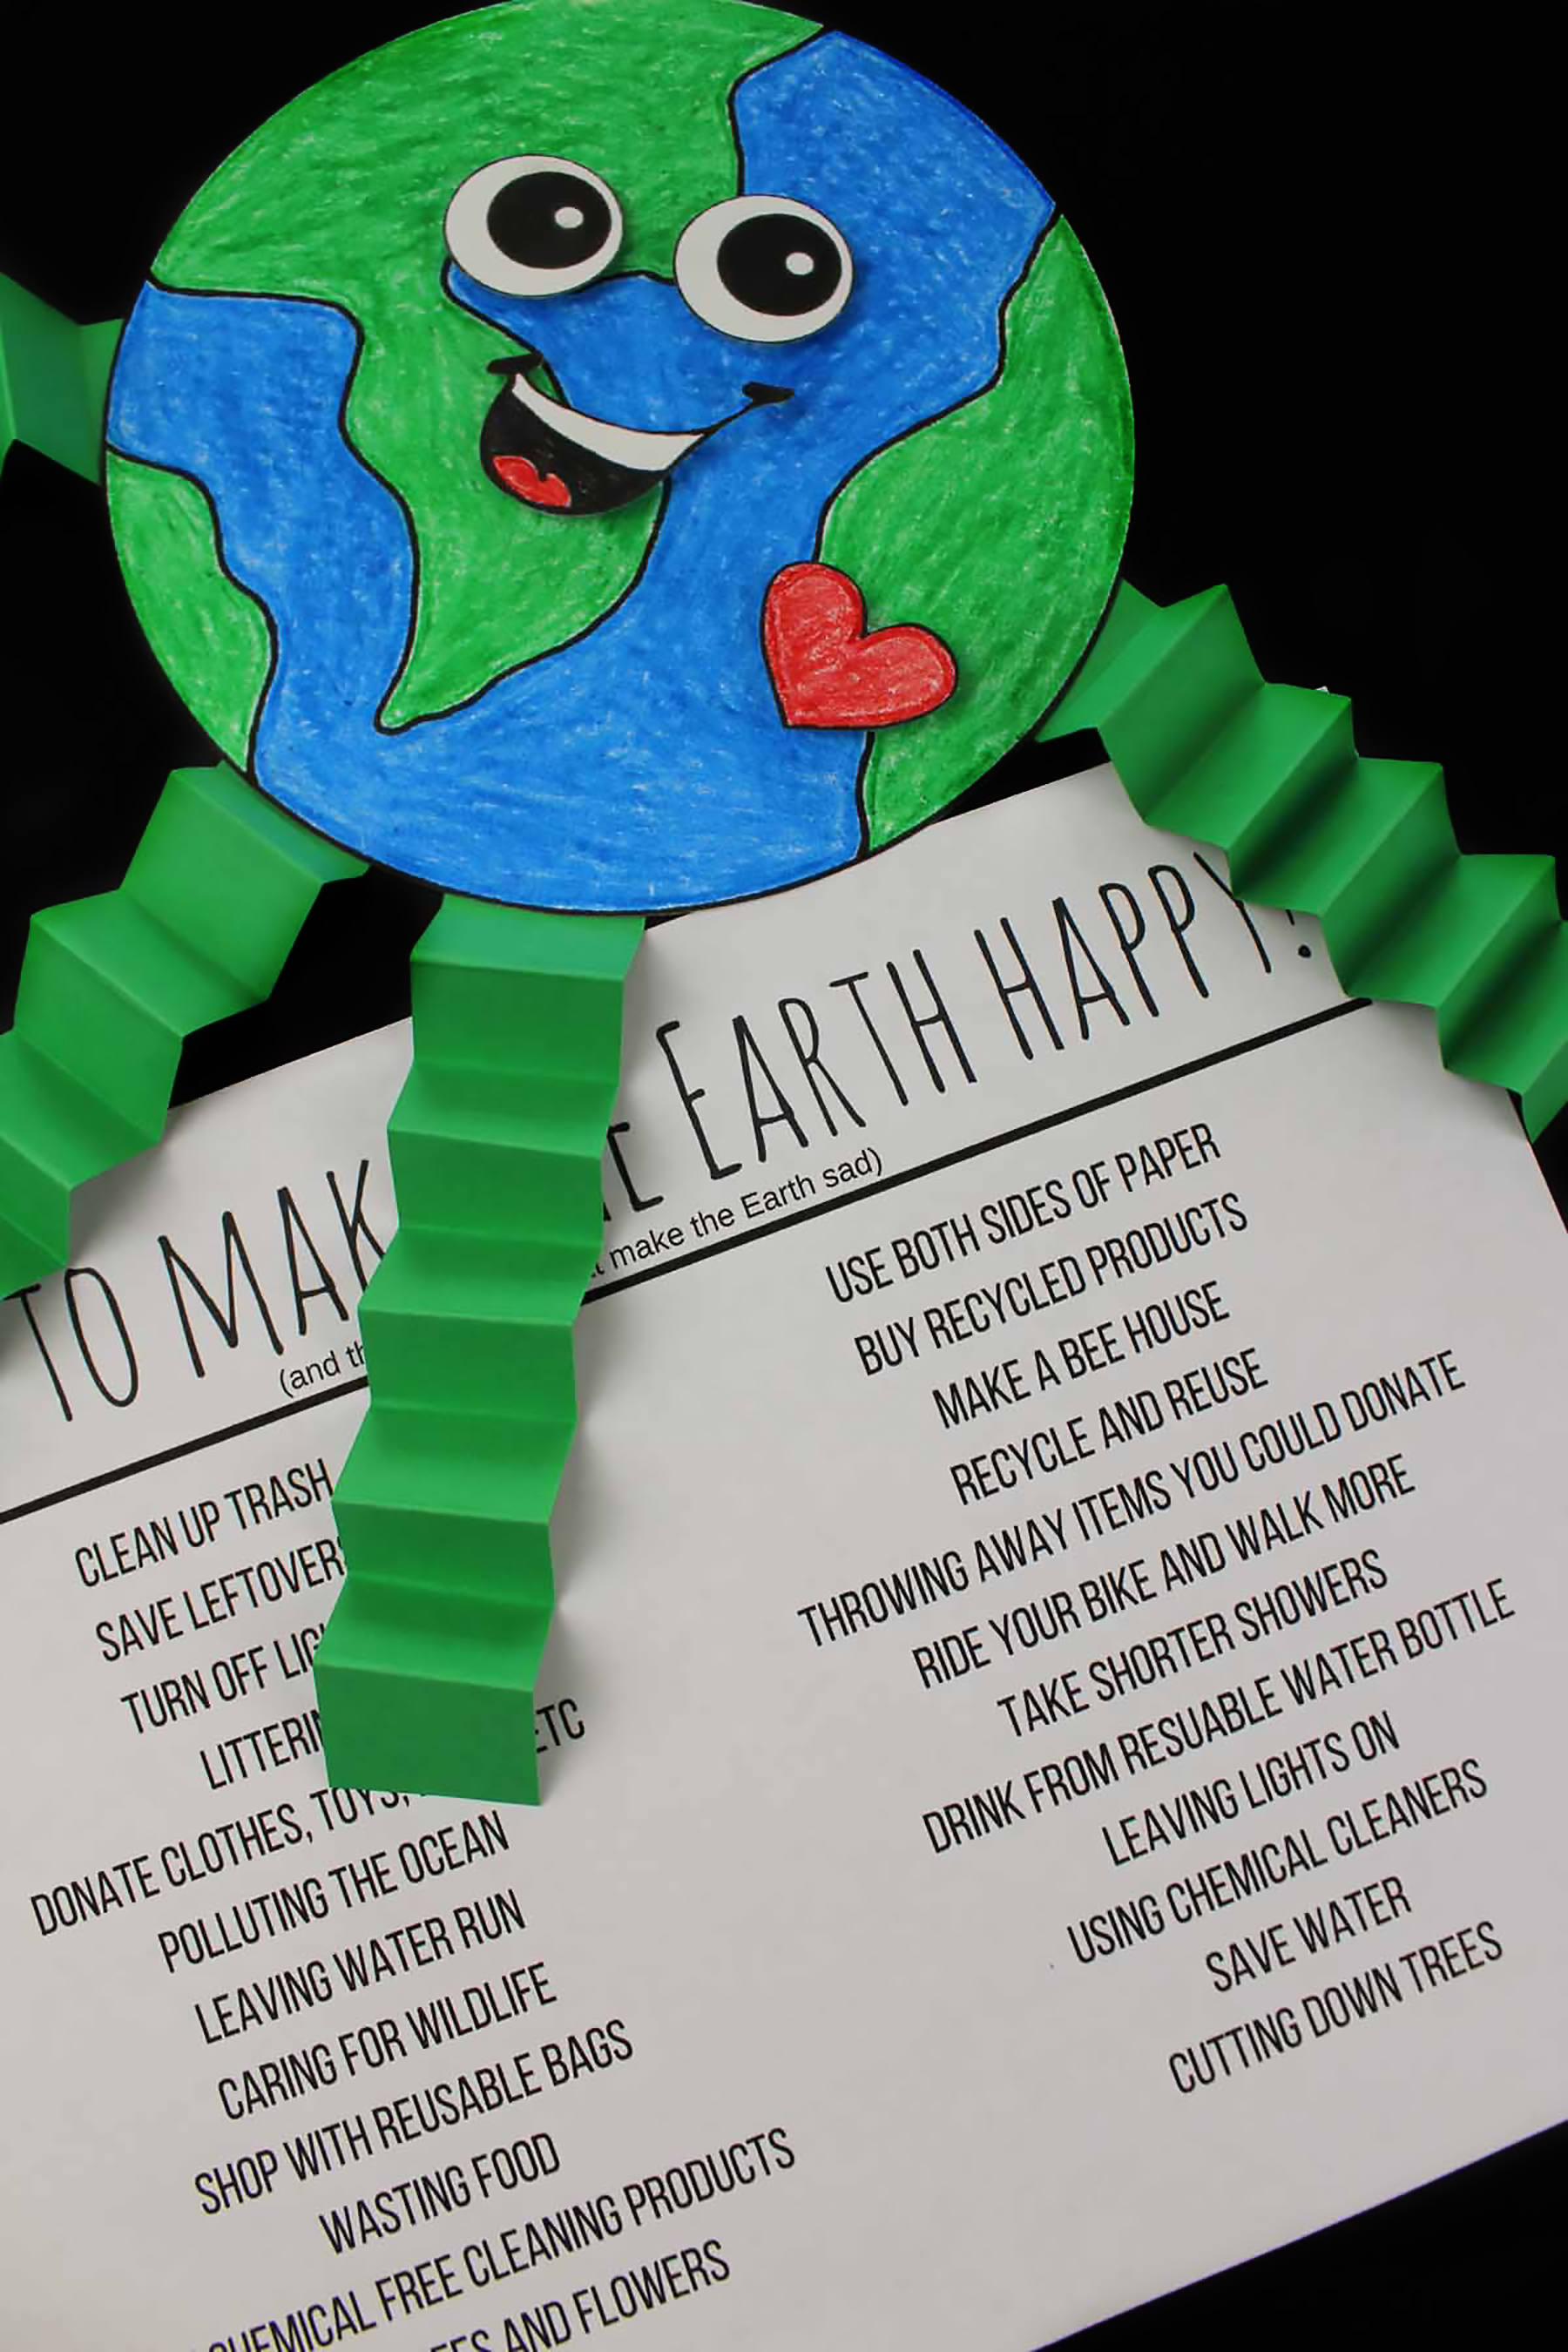 Earth Day Craft: What Makes Earth Happy And Sad